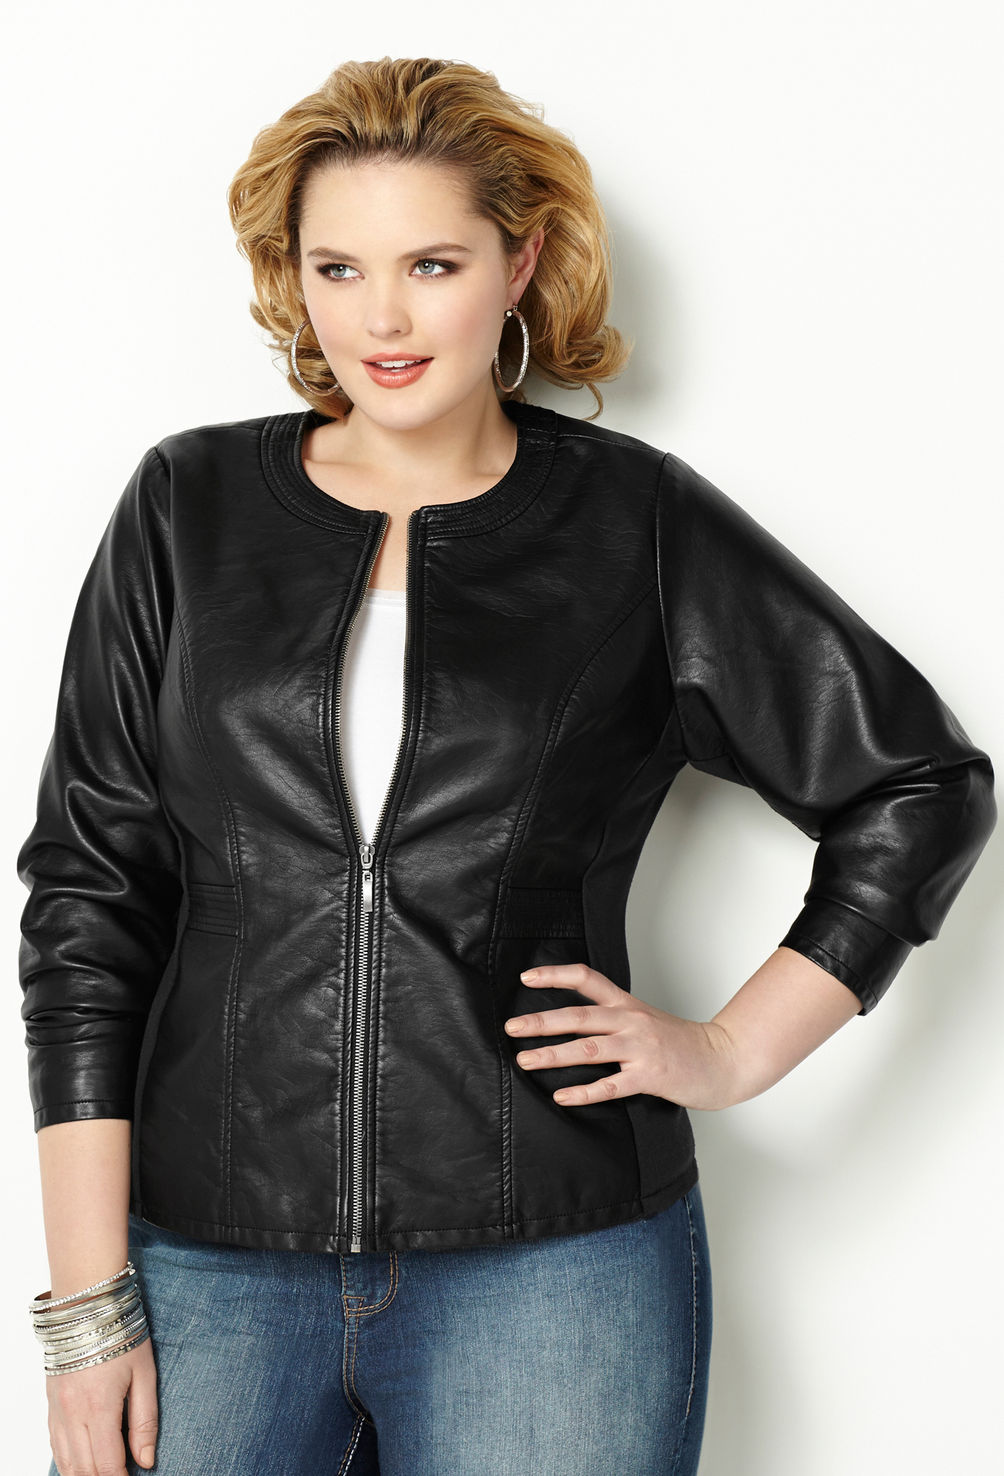 Plus Size Special Occasion Jackets, Mother of the Bride Jacket Dresses, Evening Coats, Formal, Sizes 14 - 36, ready-to-wear and made-to-order. Plus Size Special Occasion Jackets, Mother of the Bride Jacket Dresses, evening coats, designer plus size fashions ready to wear and made to order.